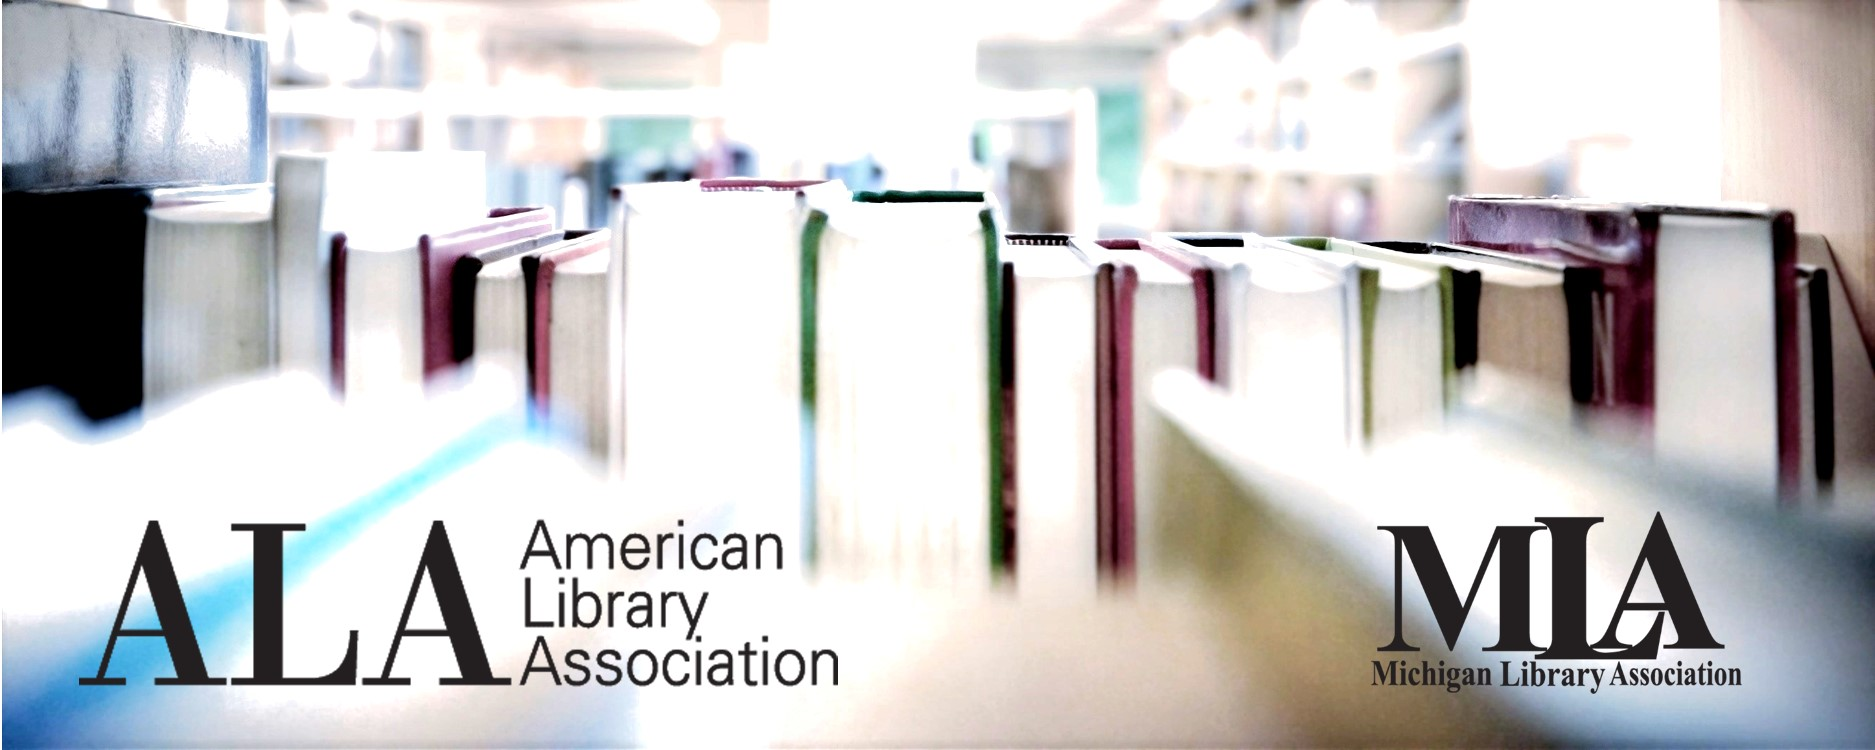 Image peering through a bookshelf with ALA logo and MLA logo